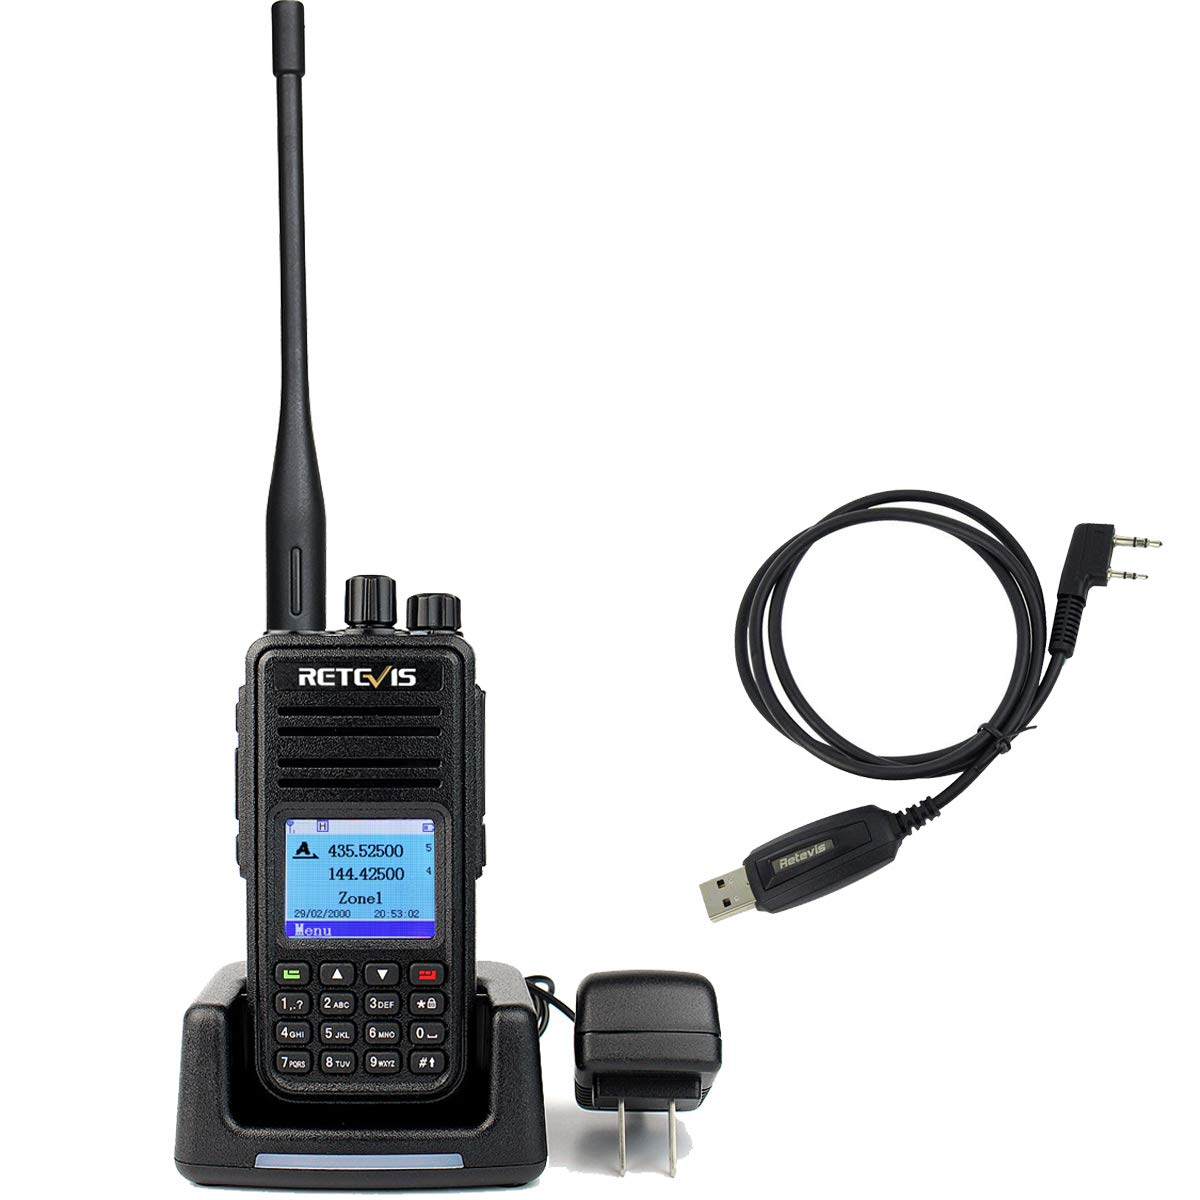 Retevis RT3S Dual Band Dual DMR Two Way RadioTime Slot 120000 Contacts 2000mAh Digital Ham Amateur Radio with Record Function Black 1 Pack